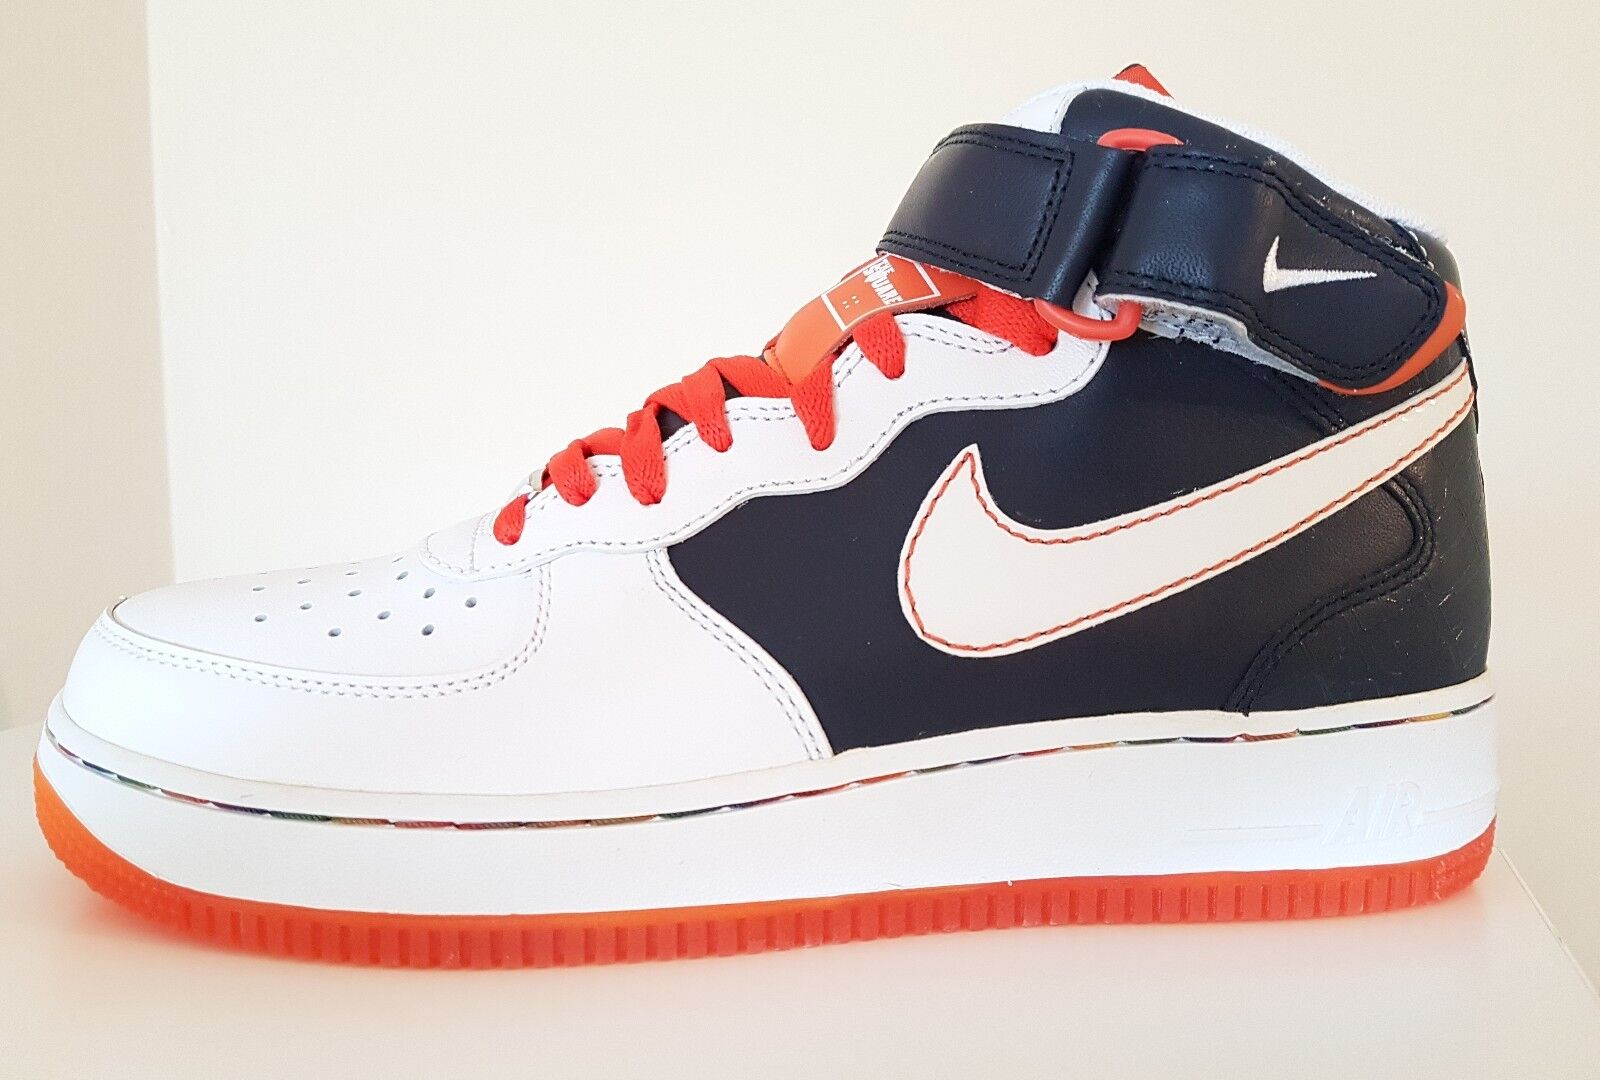 Nike Air Force 1 Mid 07 XXV 2007 Patterson Square Garden US 9 BRAND NEW